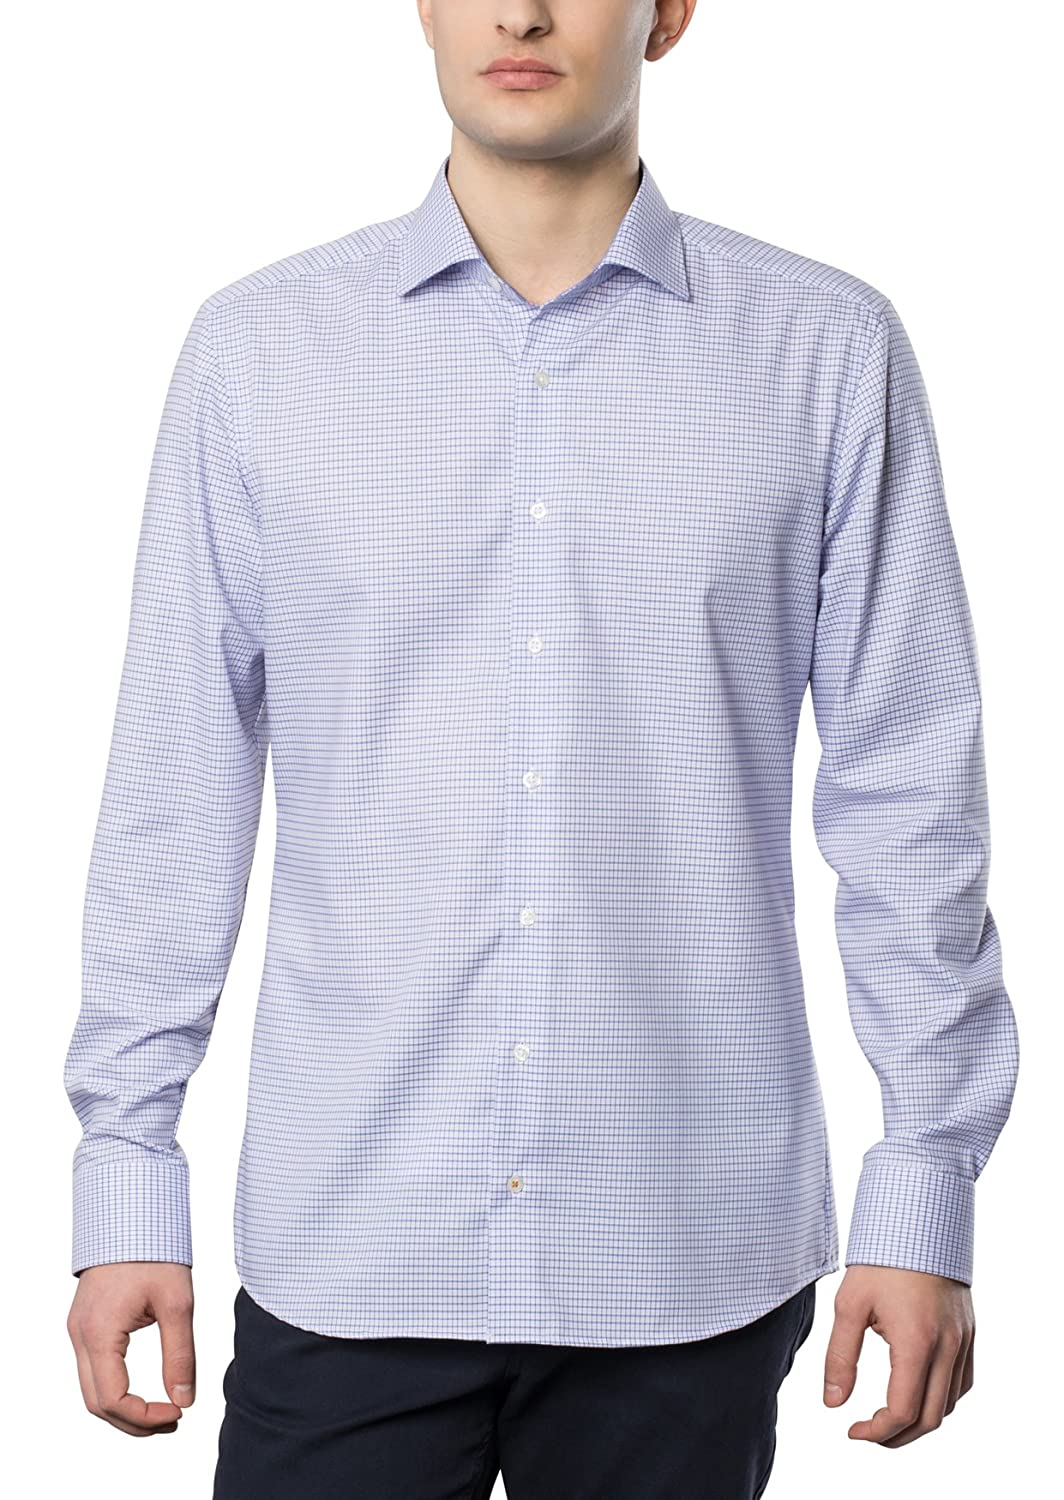 ETERNA Men's SLIM FIT long sleeve shirt rose-lightblue plaid